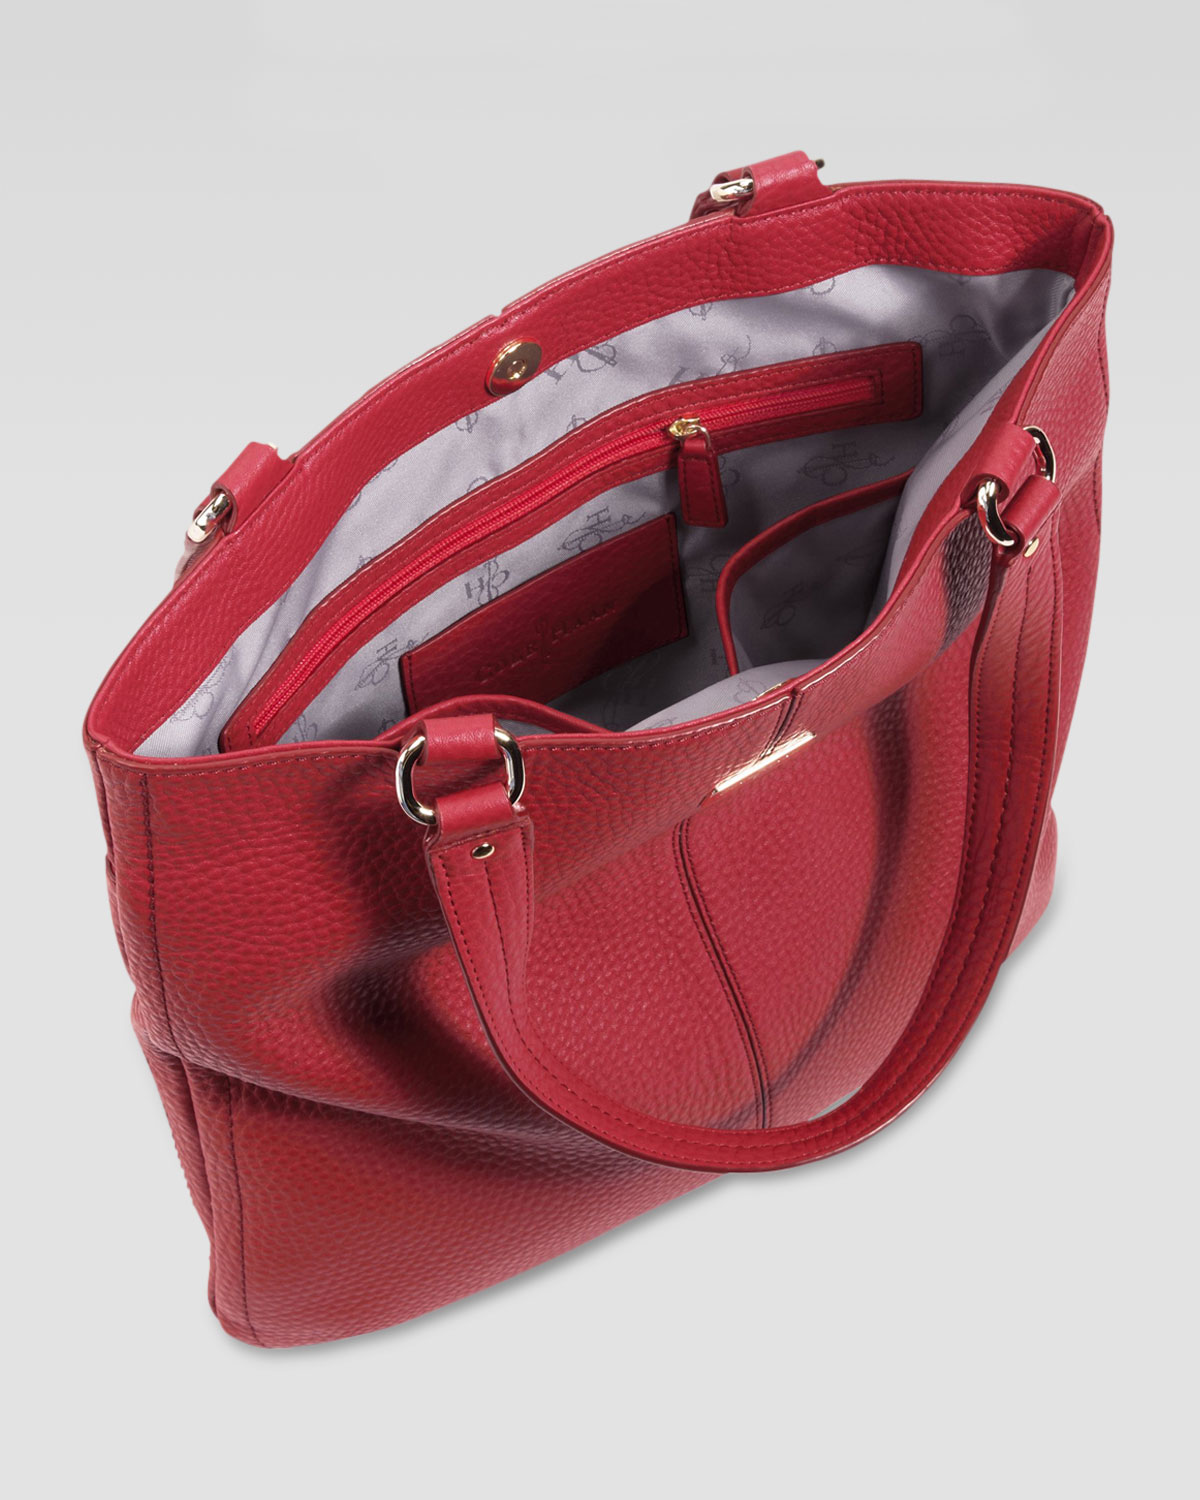 9f2ce7b1b9 Lyst - Cole Haan Village Flat Tote Bag in Red